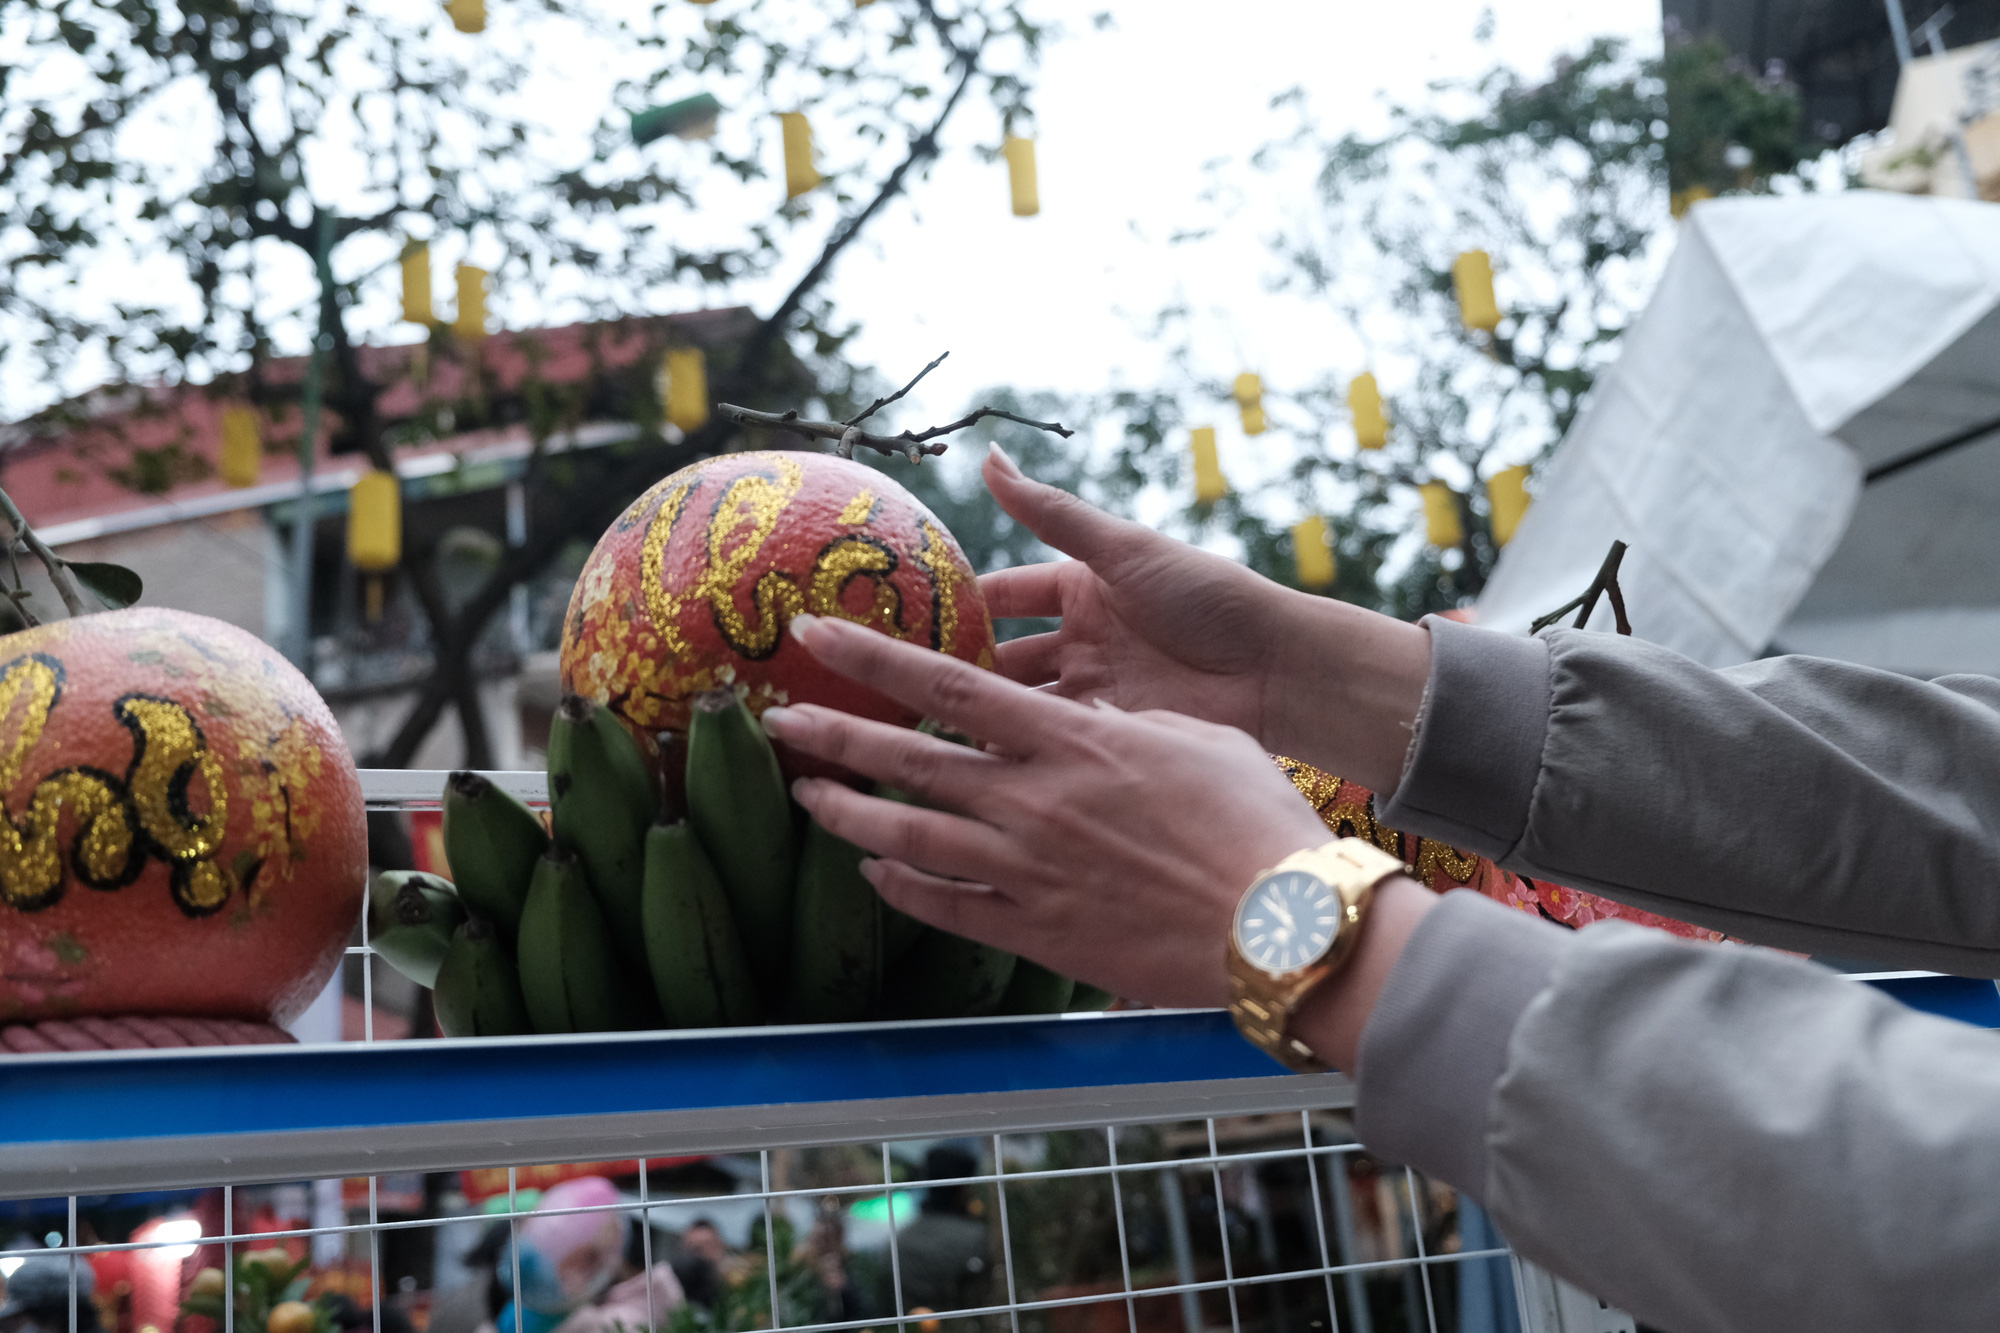 Calligraphic grapefruits are sold at the Hang Luoc flower market in Hoan Kiem District, Hanoi. Photo: Mai Thuong / Tuoi Tre